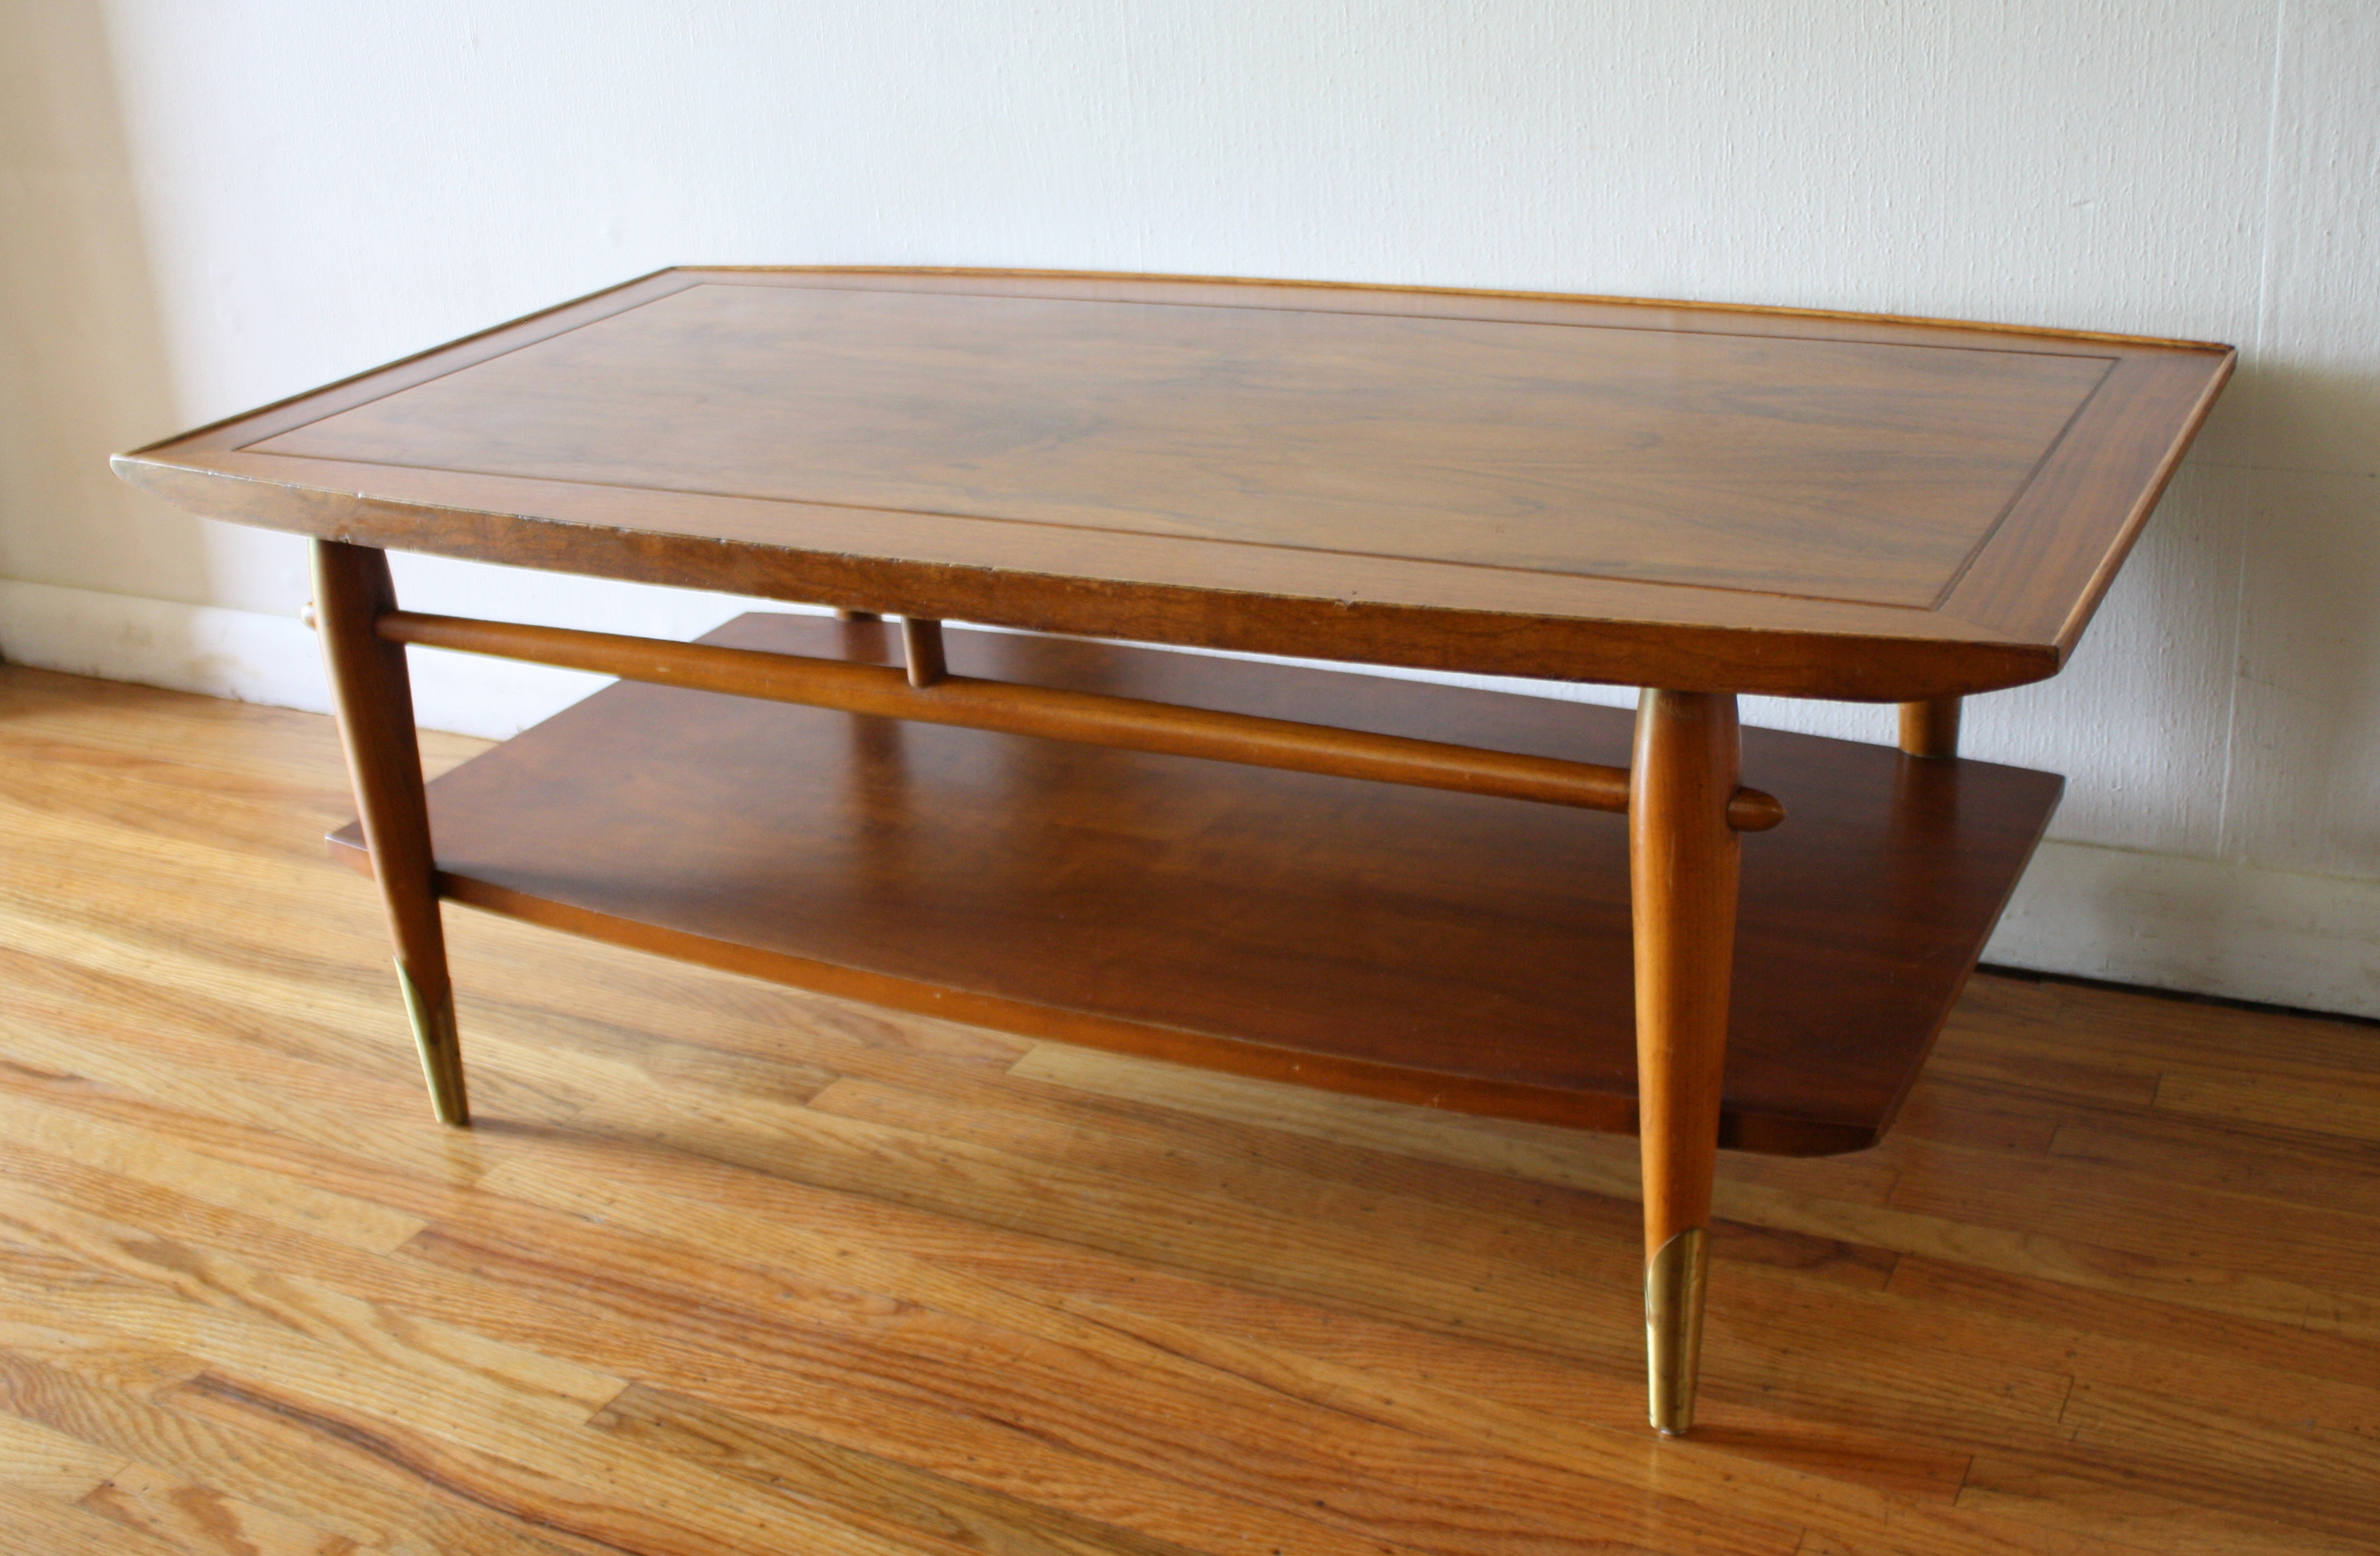 Mid Century Modern Lane Copenhagen Coffee Table Picked